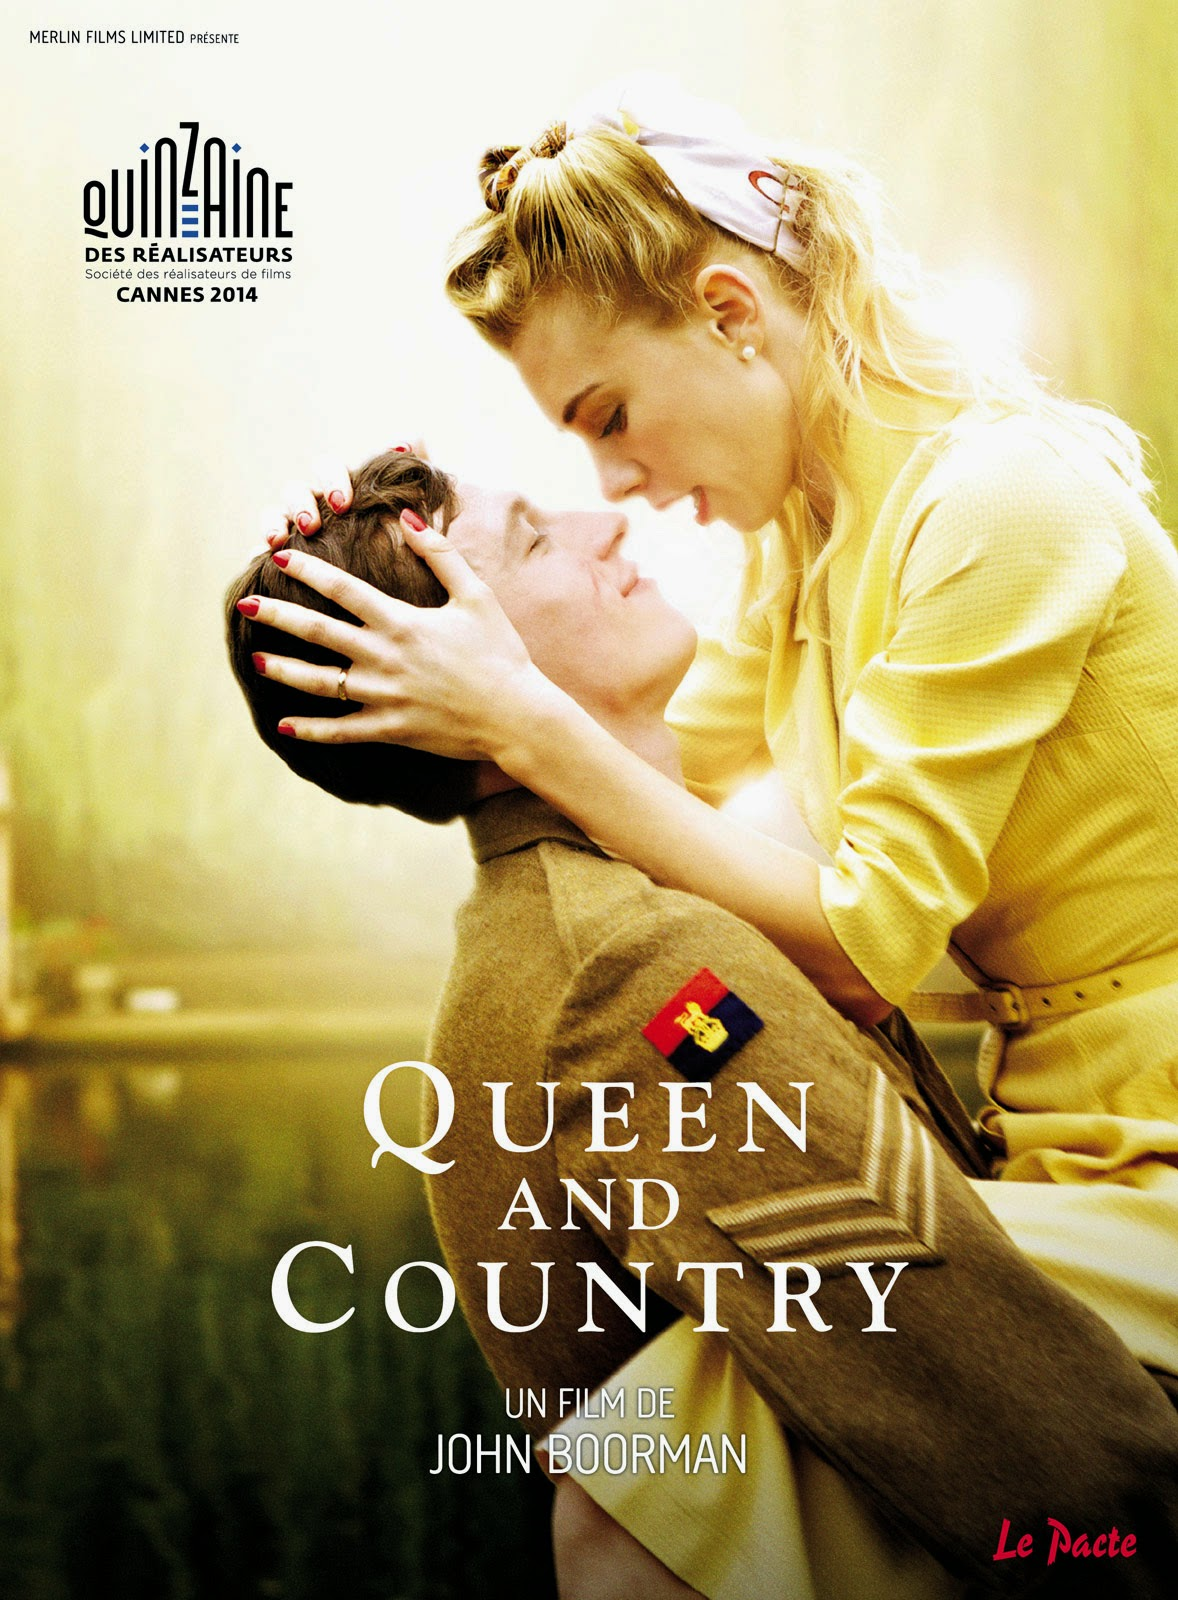 http://fuckingcinephiles.blogspot.fr/2015/01/critique-queen-and-country.html